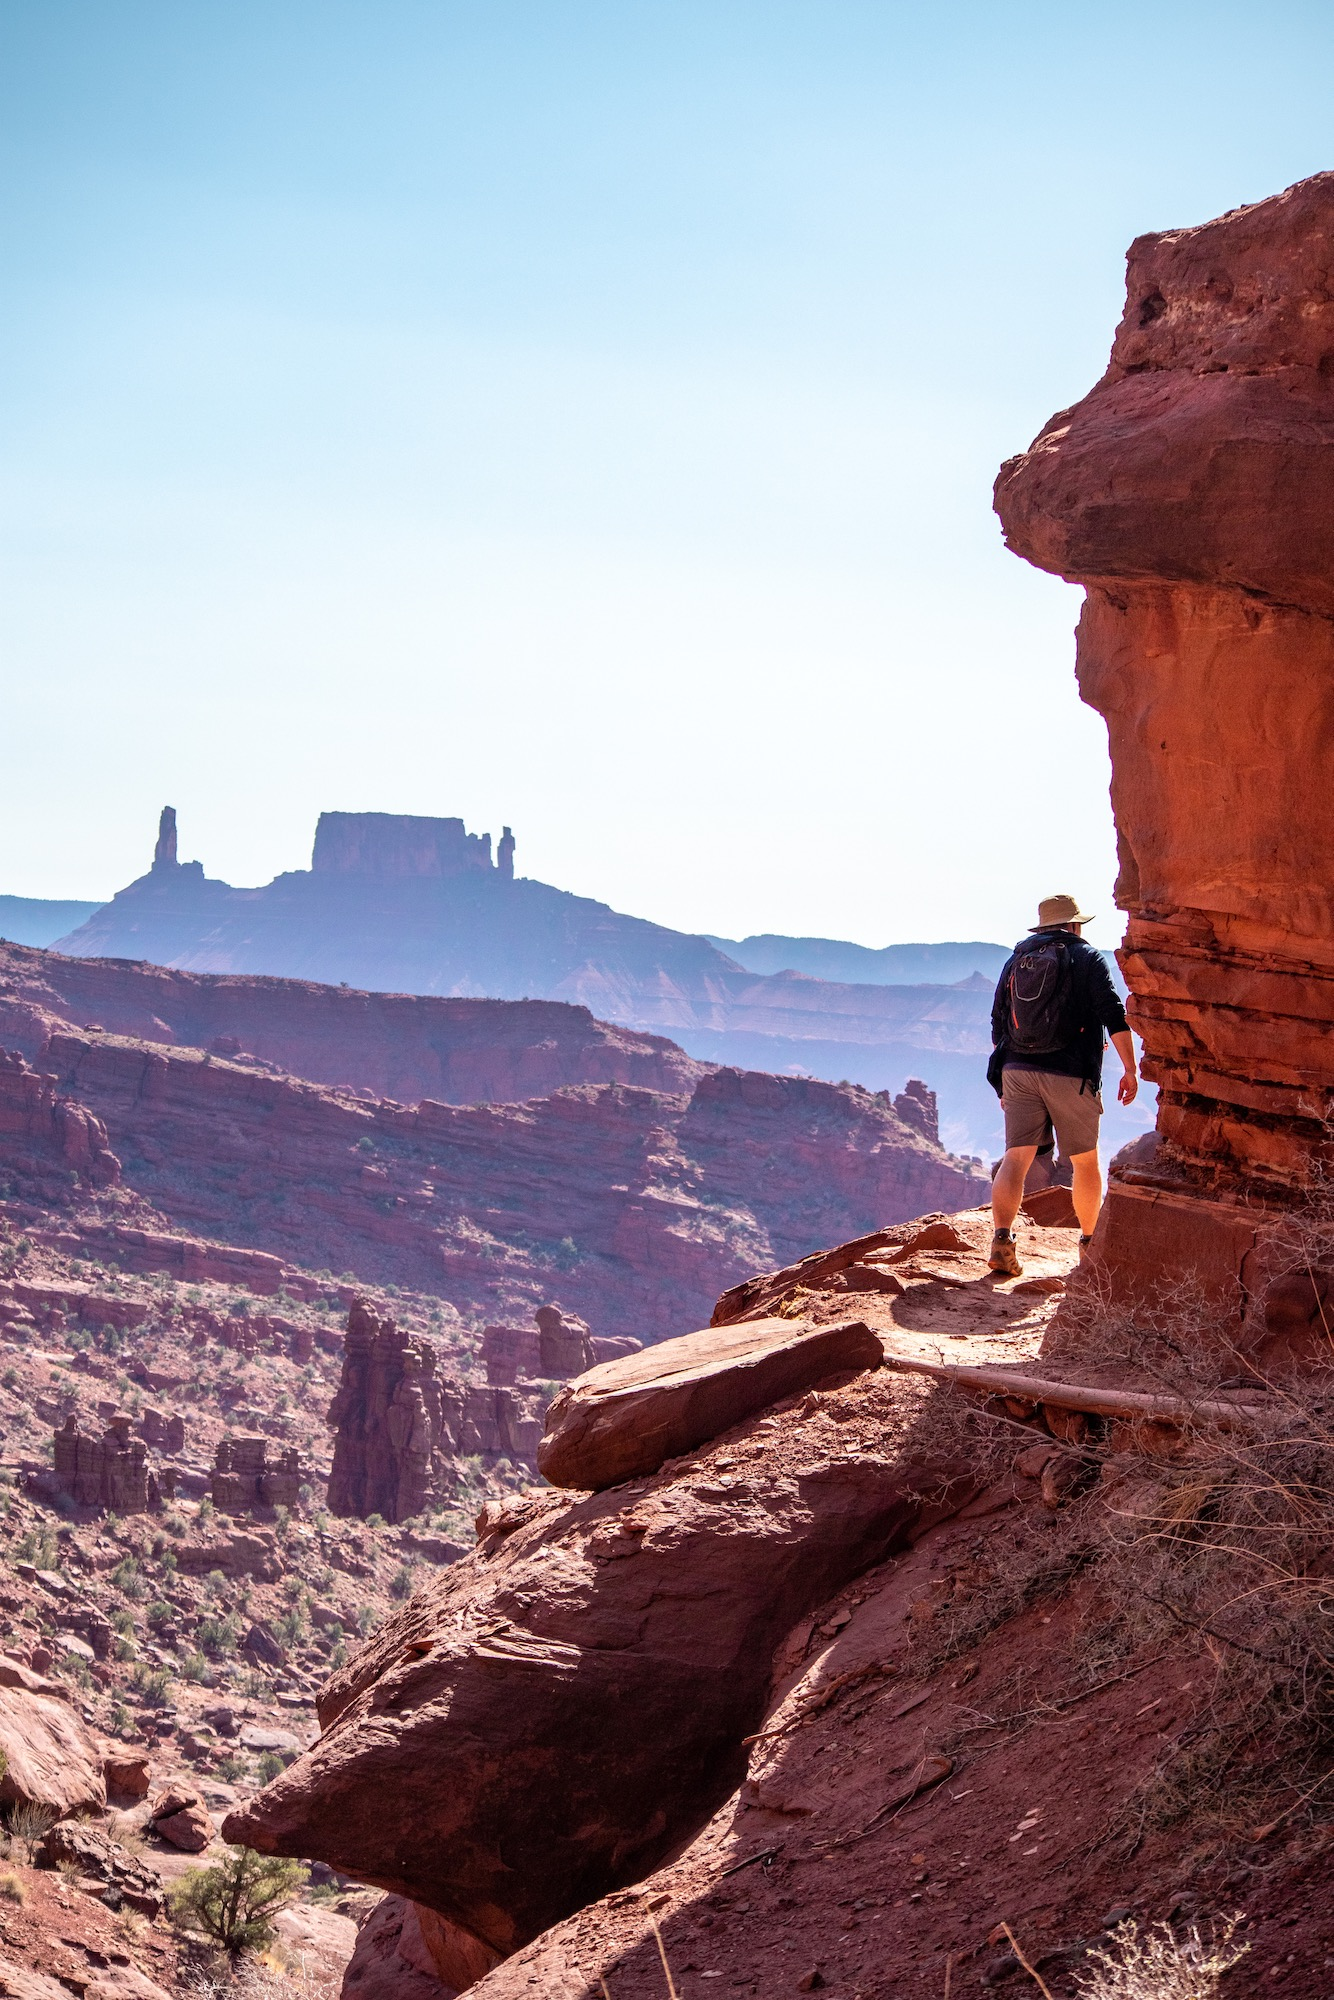 Hiking around the base of Fisher Towers, Castleton tower in the distance.